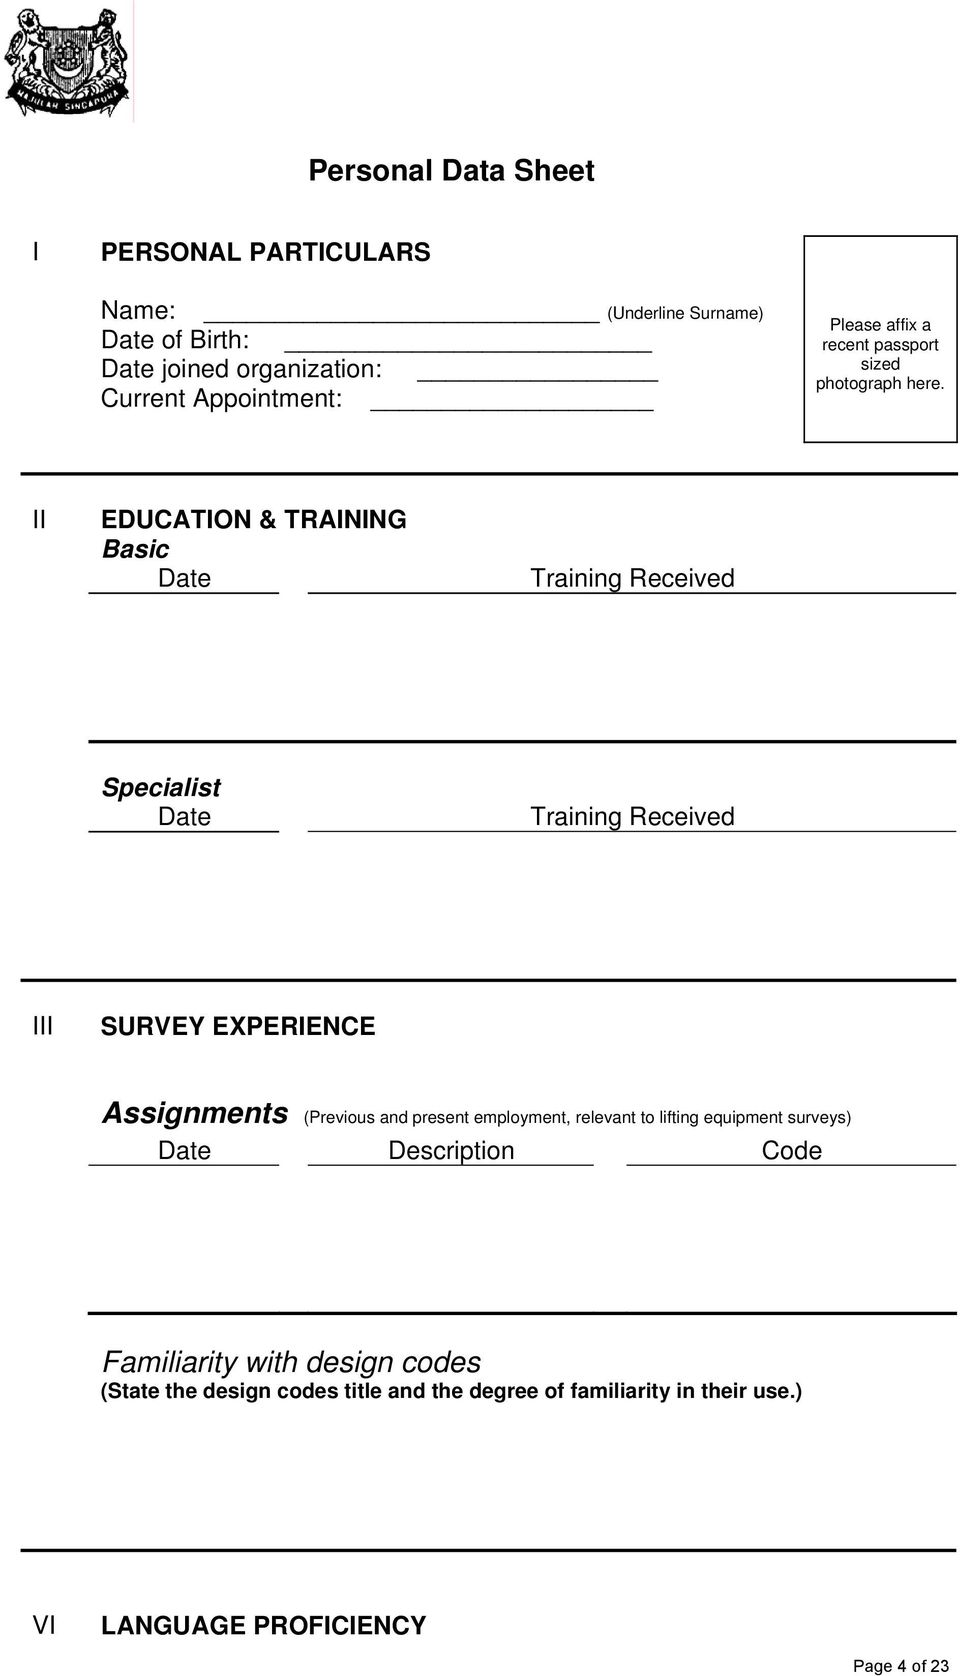 II EDUCATION & TRAINING Basic Date Training Received Specialist Date Training Received III SURVEY EXPERIENCE Assignments (Previous and